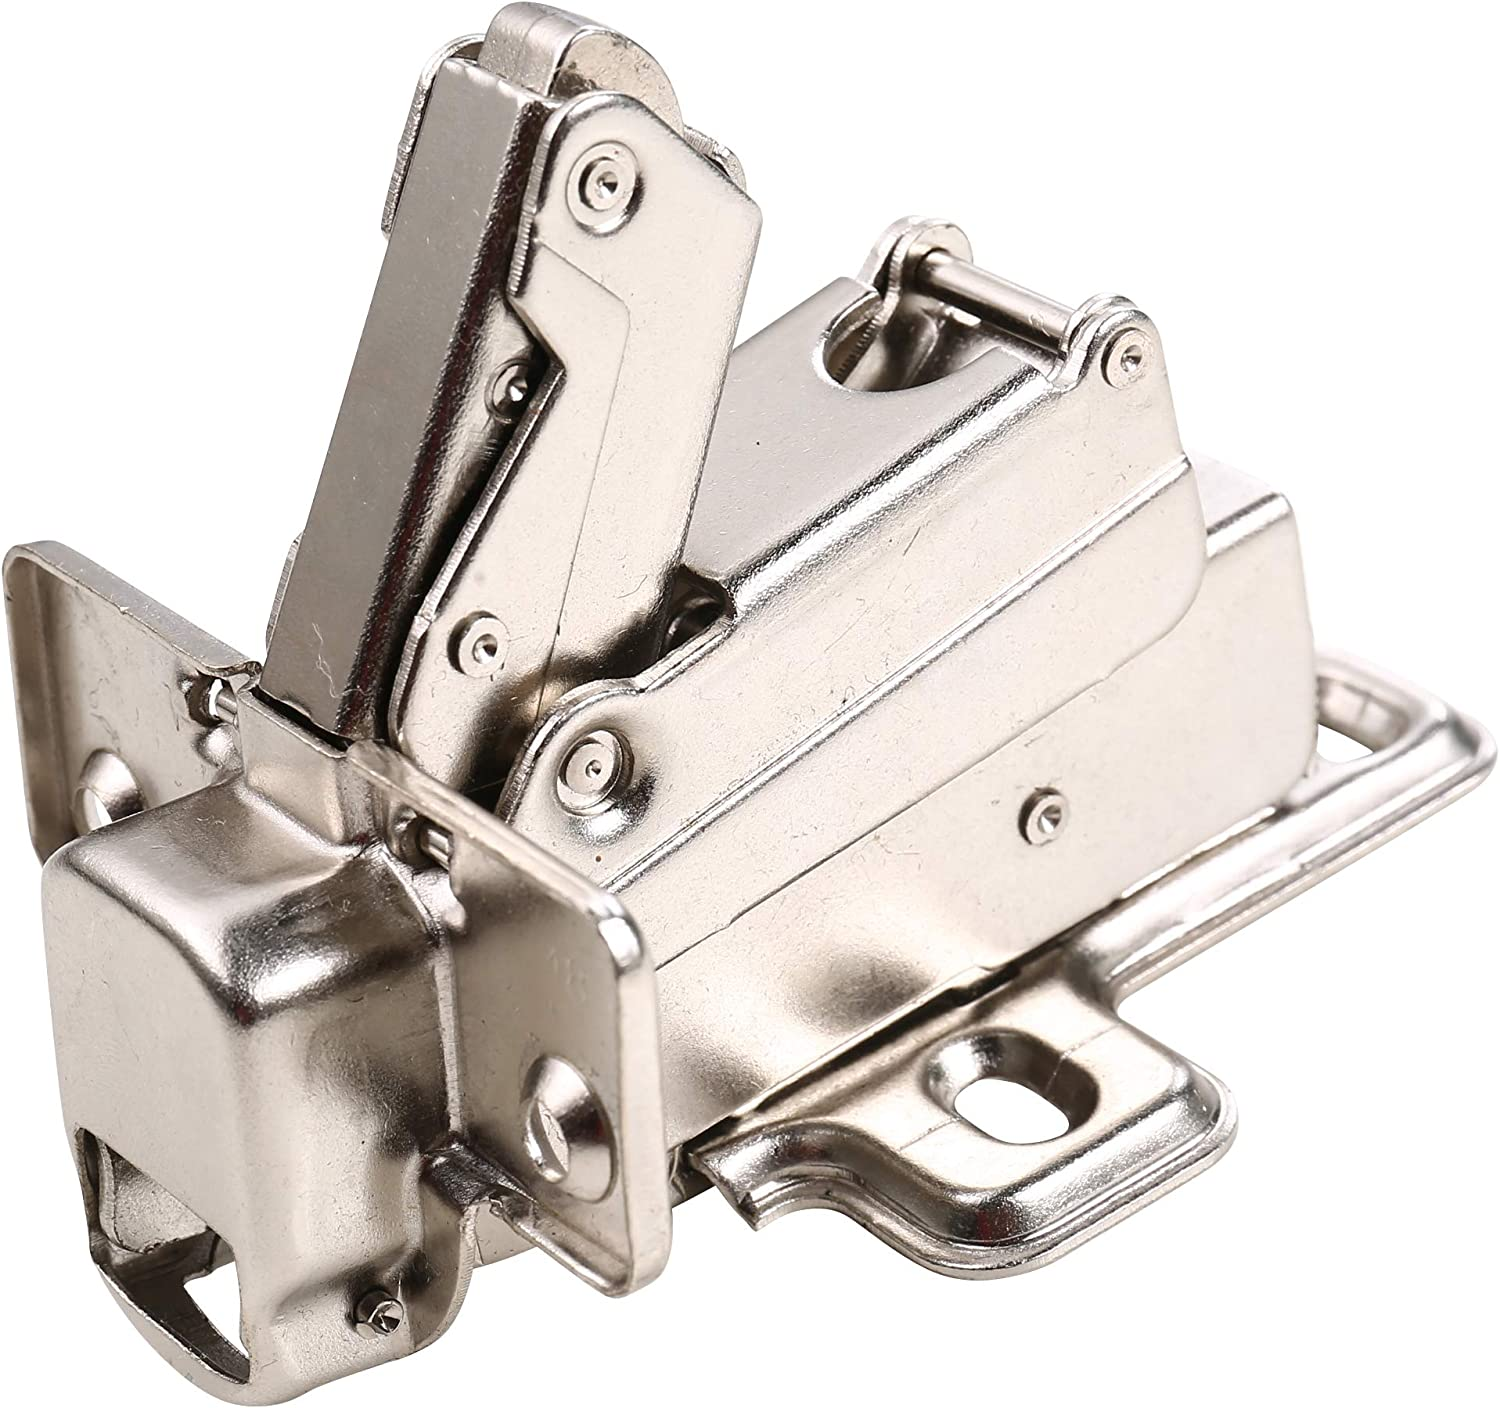 Uhppote - 175 Degree Cabinet Corner Hinges Detachable For ...